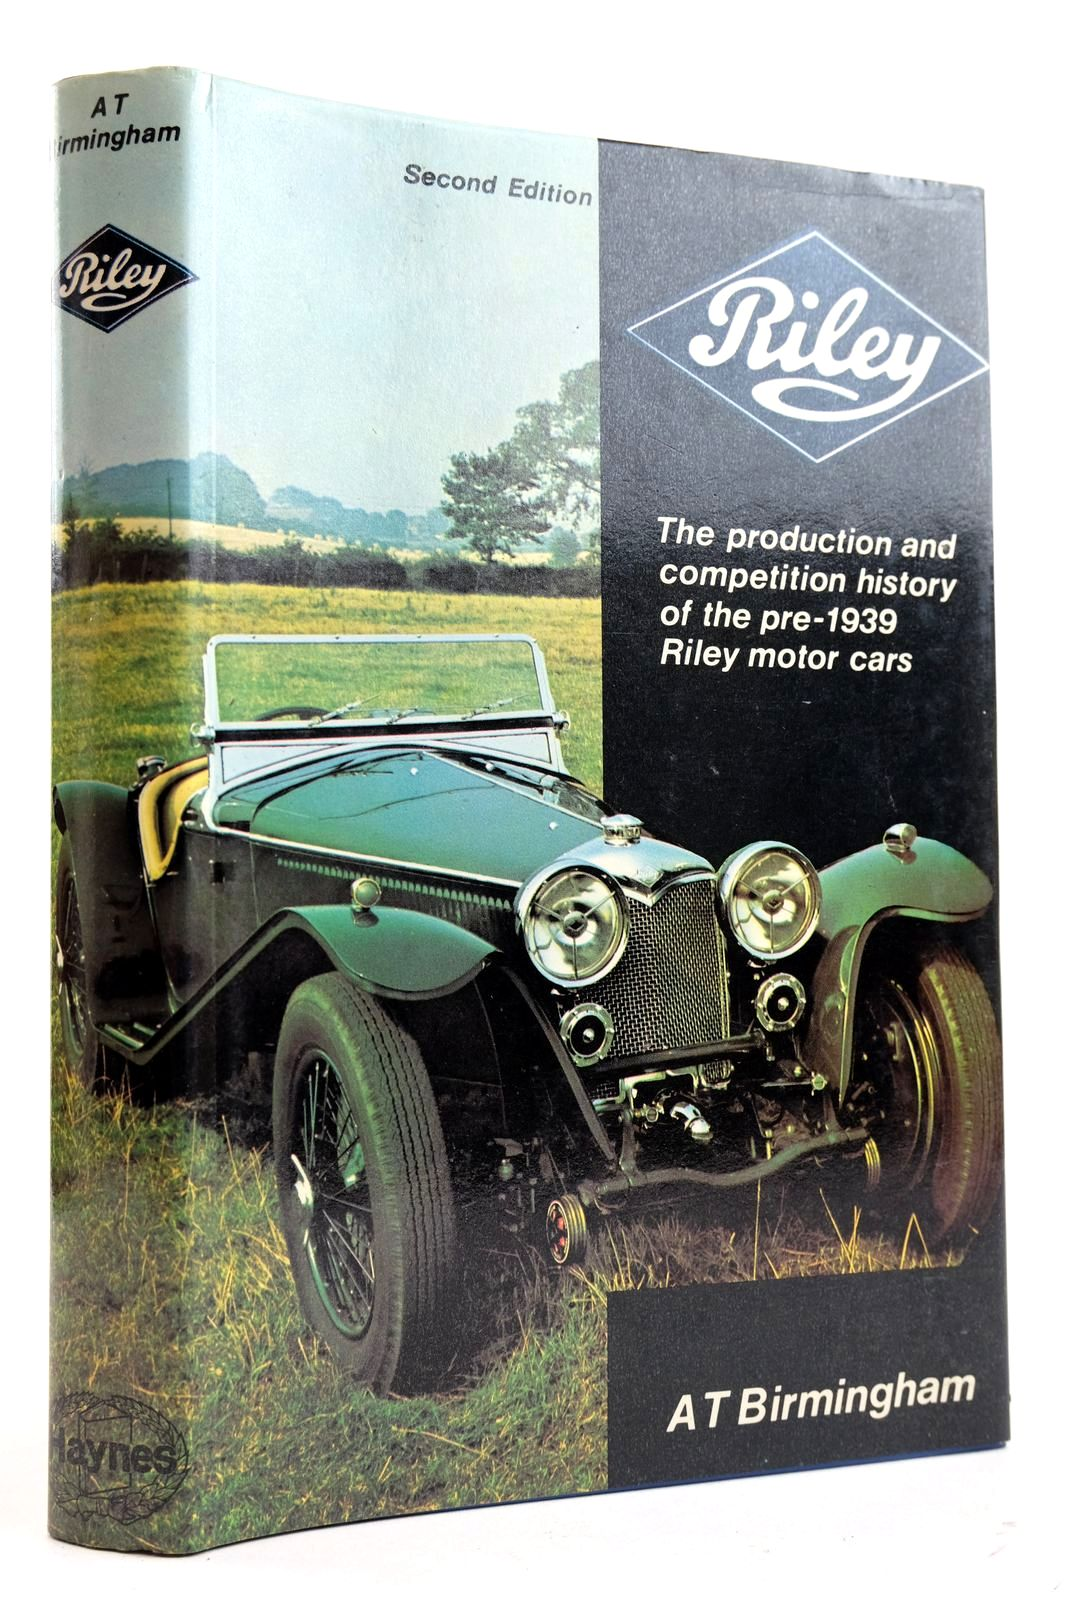 Photo of RILEY THE PRODUCTION AND COMPETITION HISTORY OF THE PRE-1939 RILEY MOTOR CARS. written by Birmingham, A.T. published by Haynes Publishing Group (STOCK CODE: 2132563)  for sale by Stella & Rose's Books